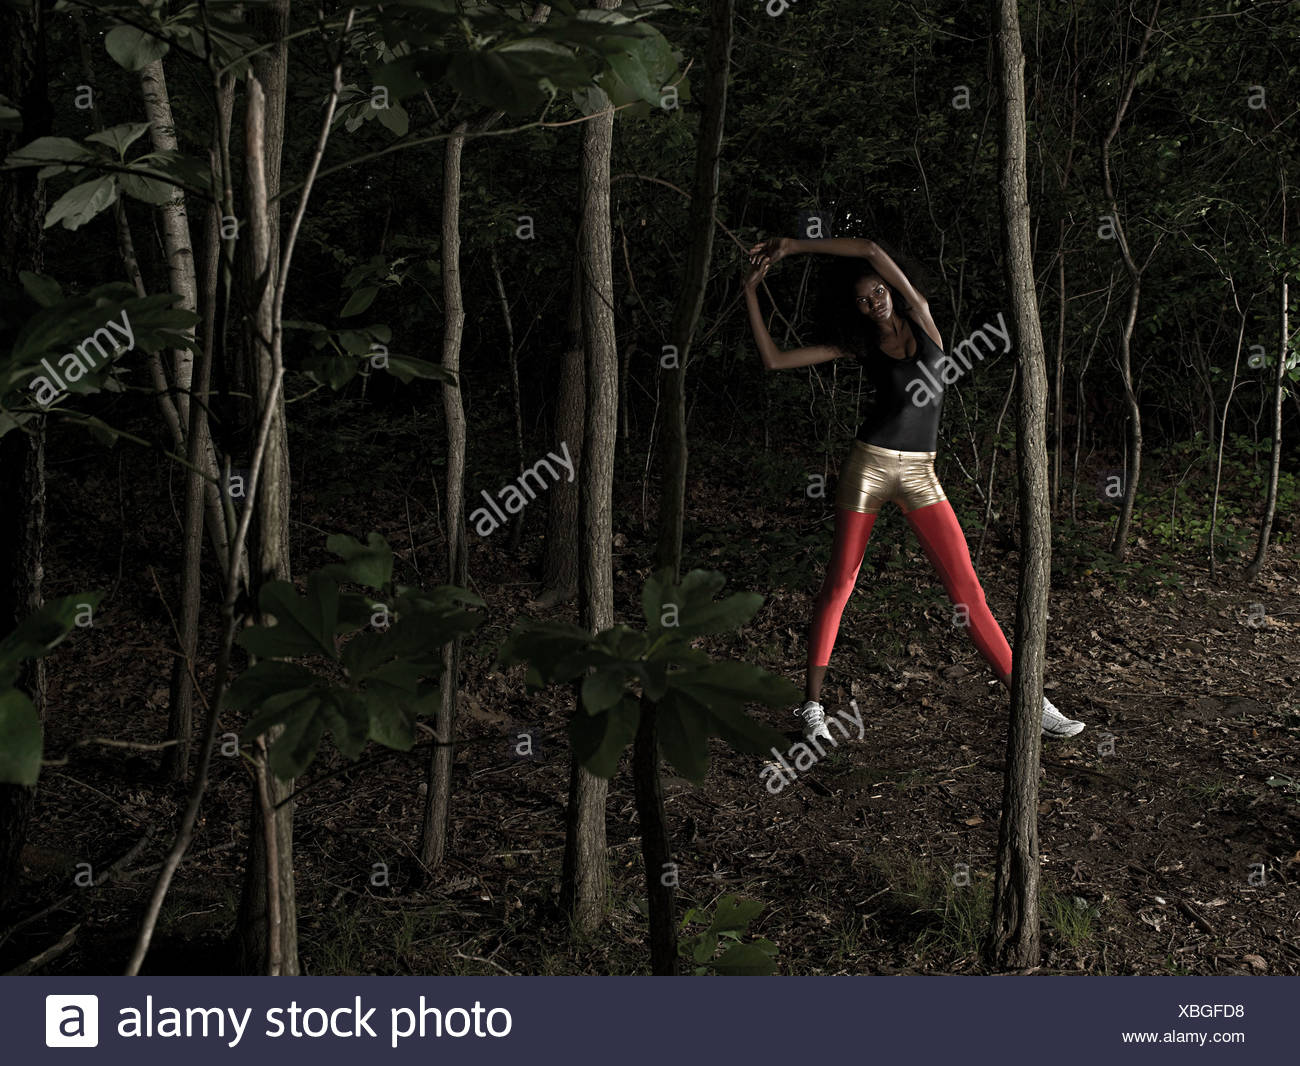 Female athlete in forest - Stock Image